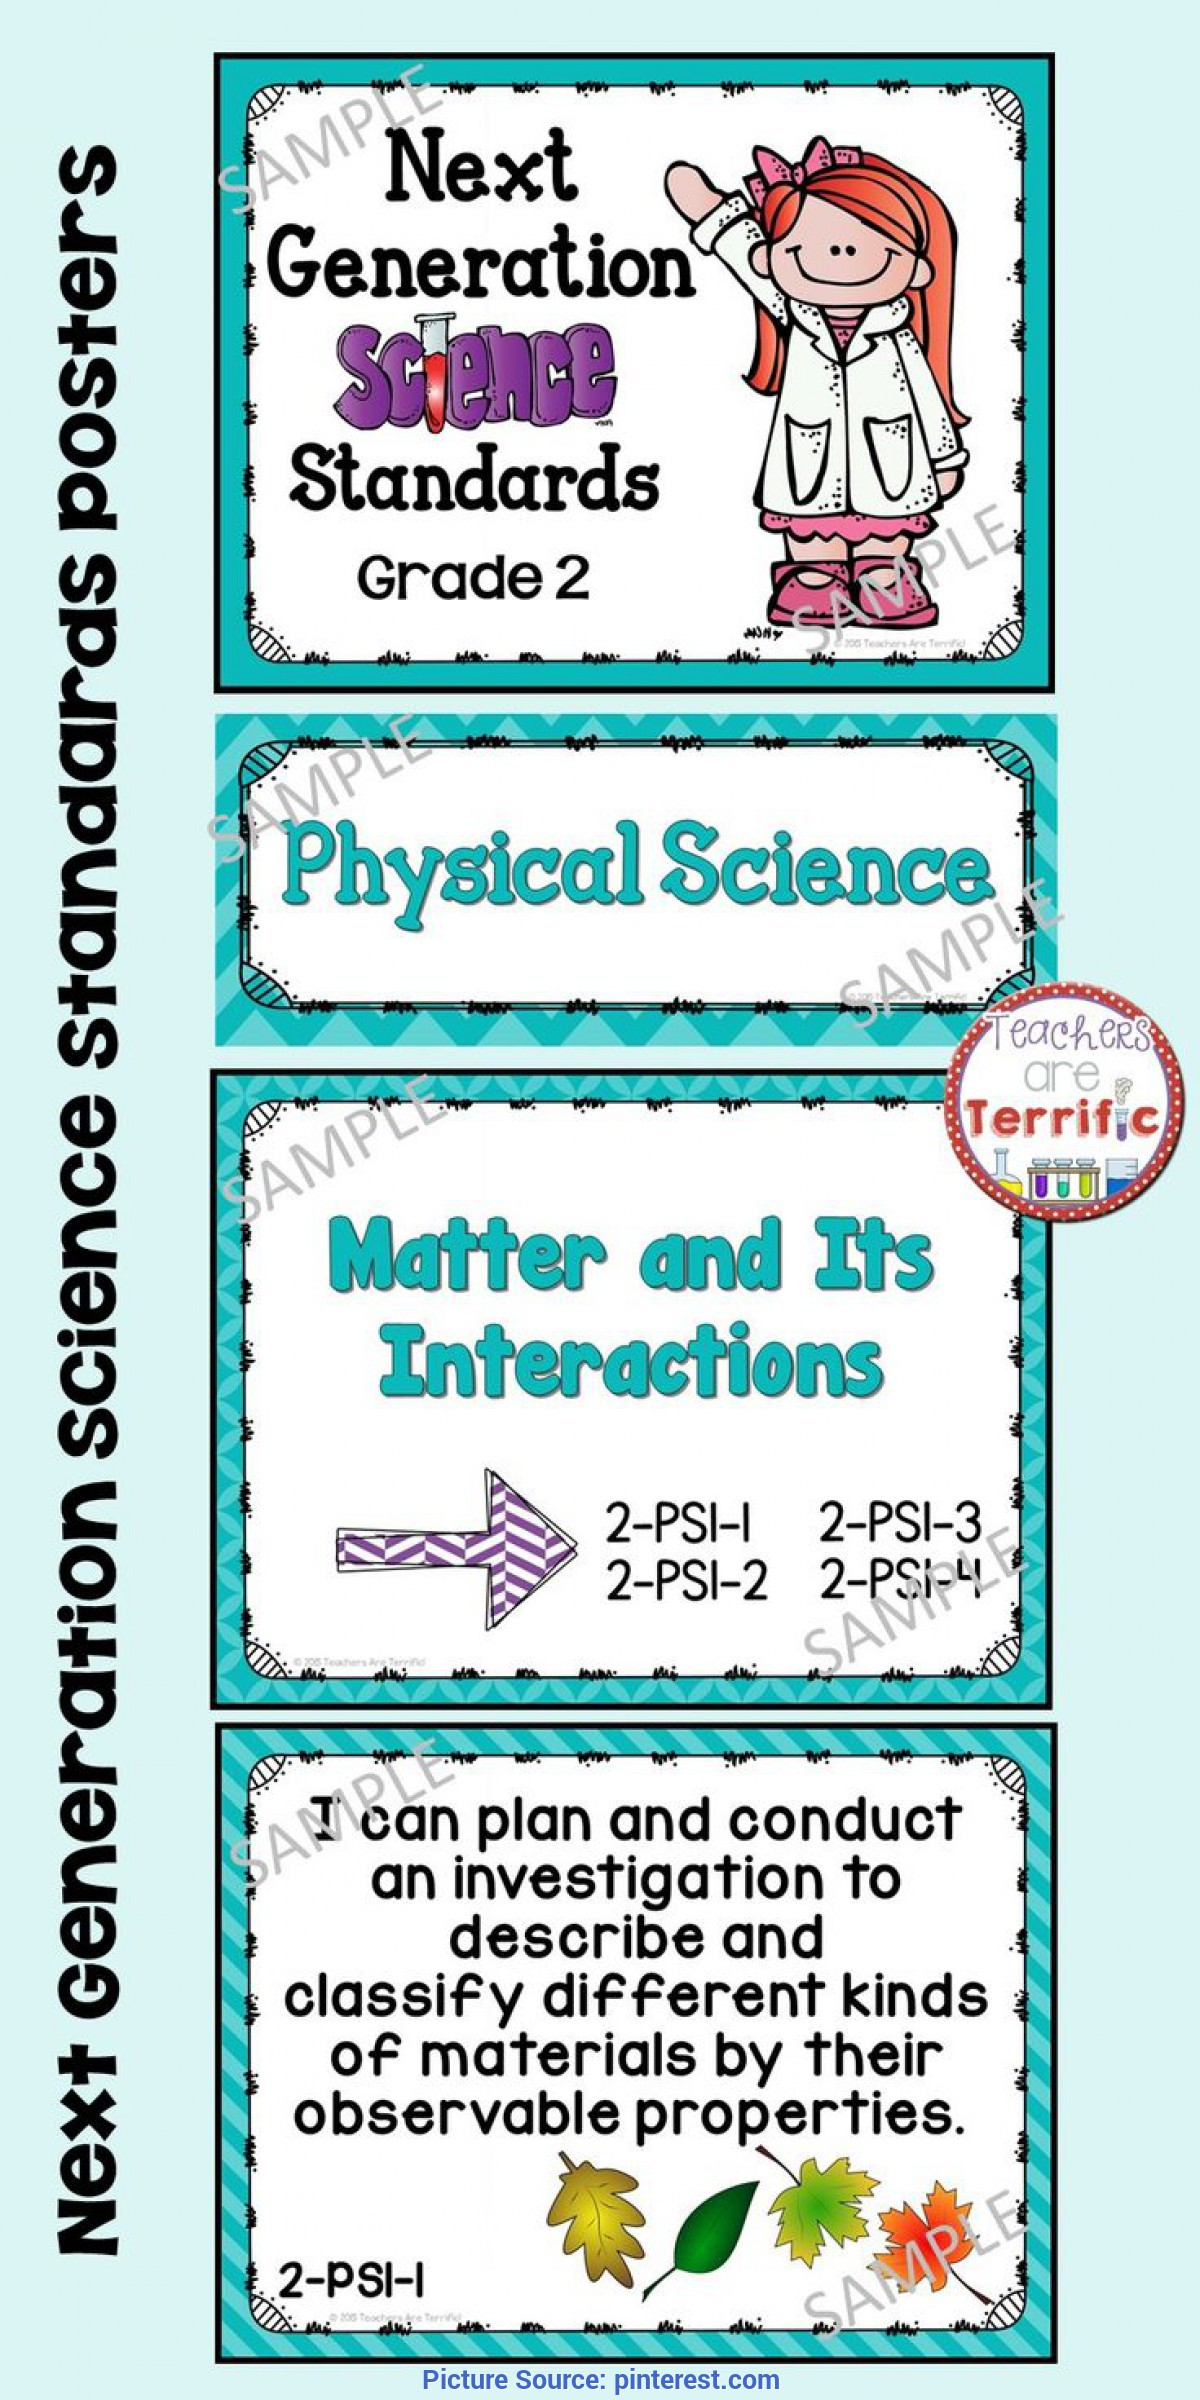 Useful Ngss 2Nd Grade Lesson Plans Next Generation Science Standards Posters For 2Nd Grade (Ngs